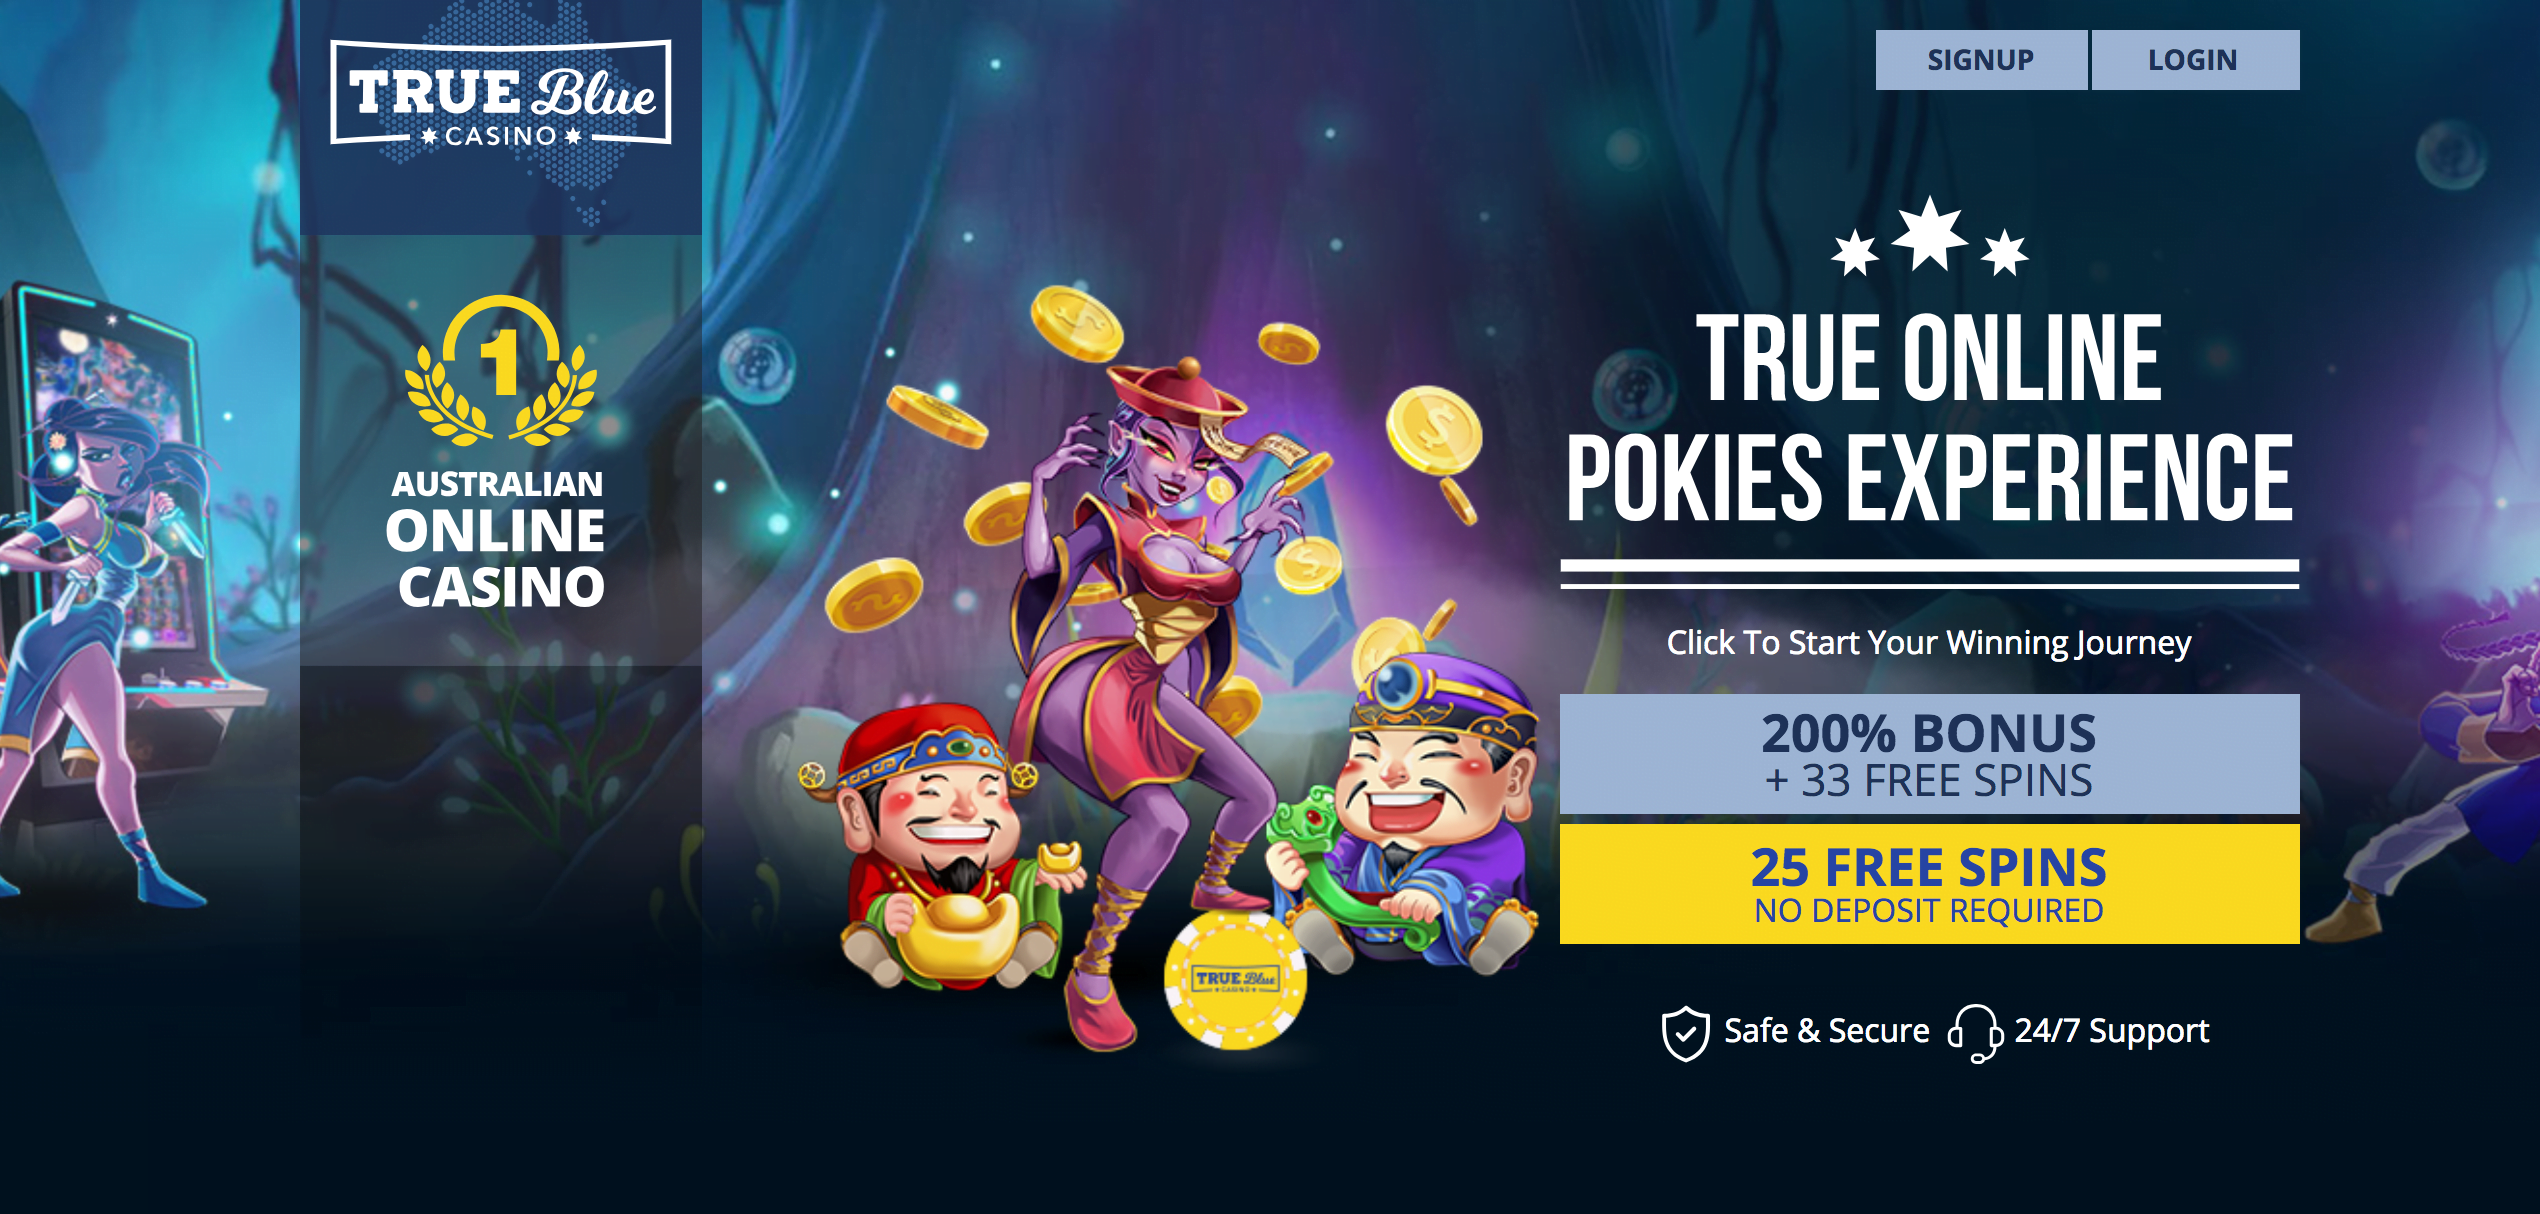 25 Free Spins At True Blue No Deposit Bonus